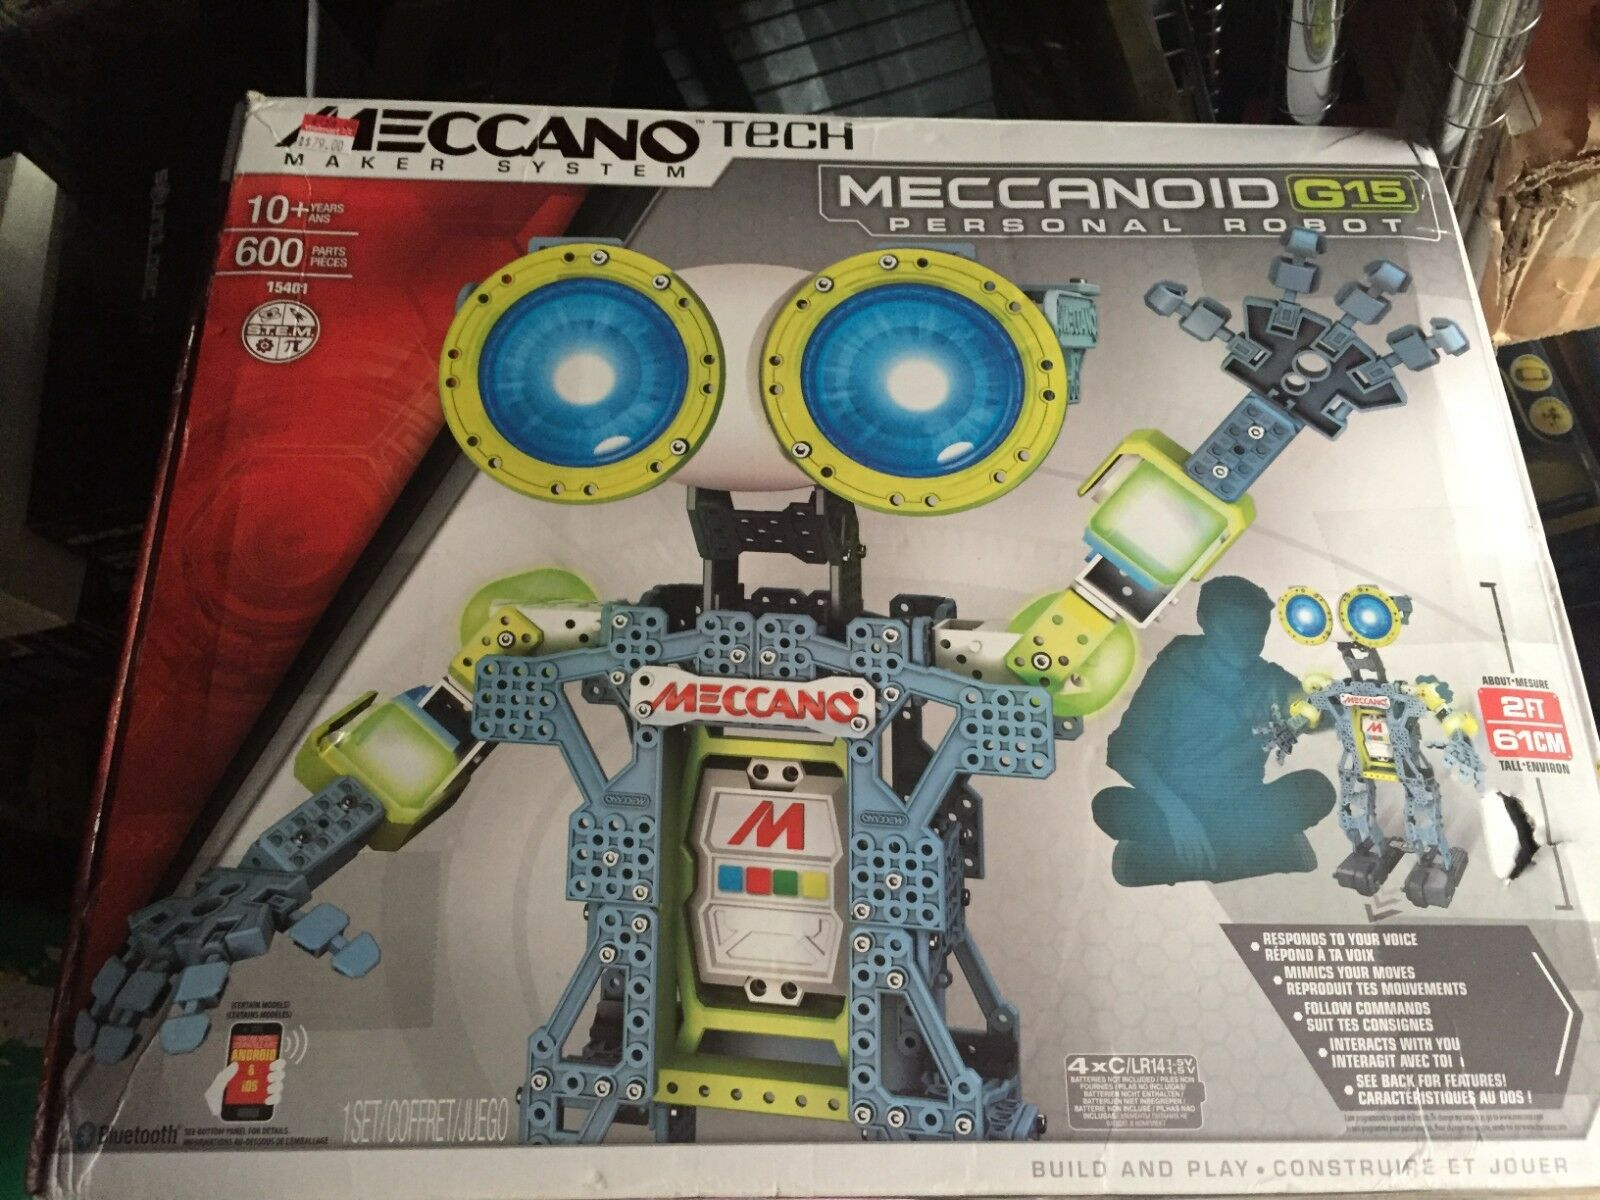 MECCANOID G15 PERSONAL ROBOT Meccano Tech INTERACTIVE Building Set 15401 NEW